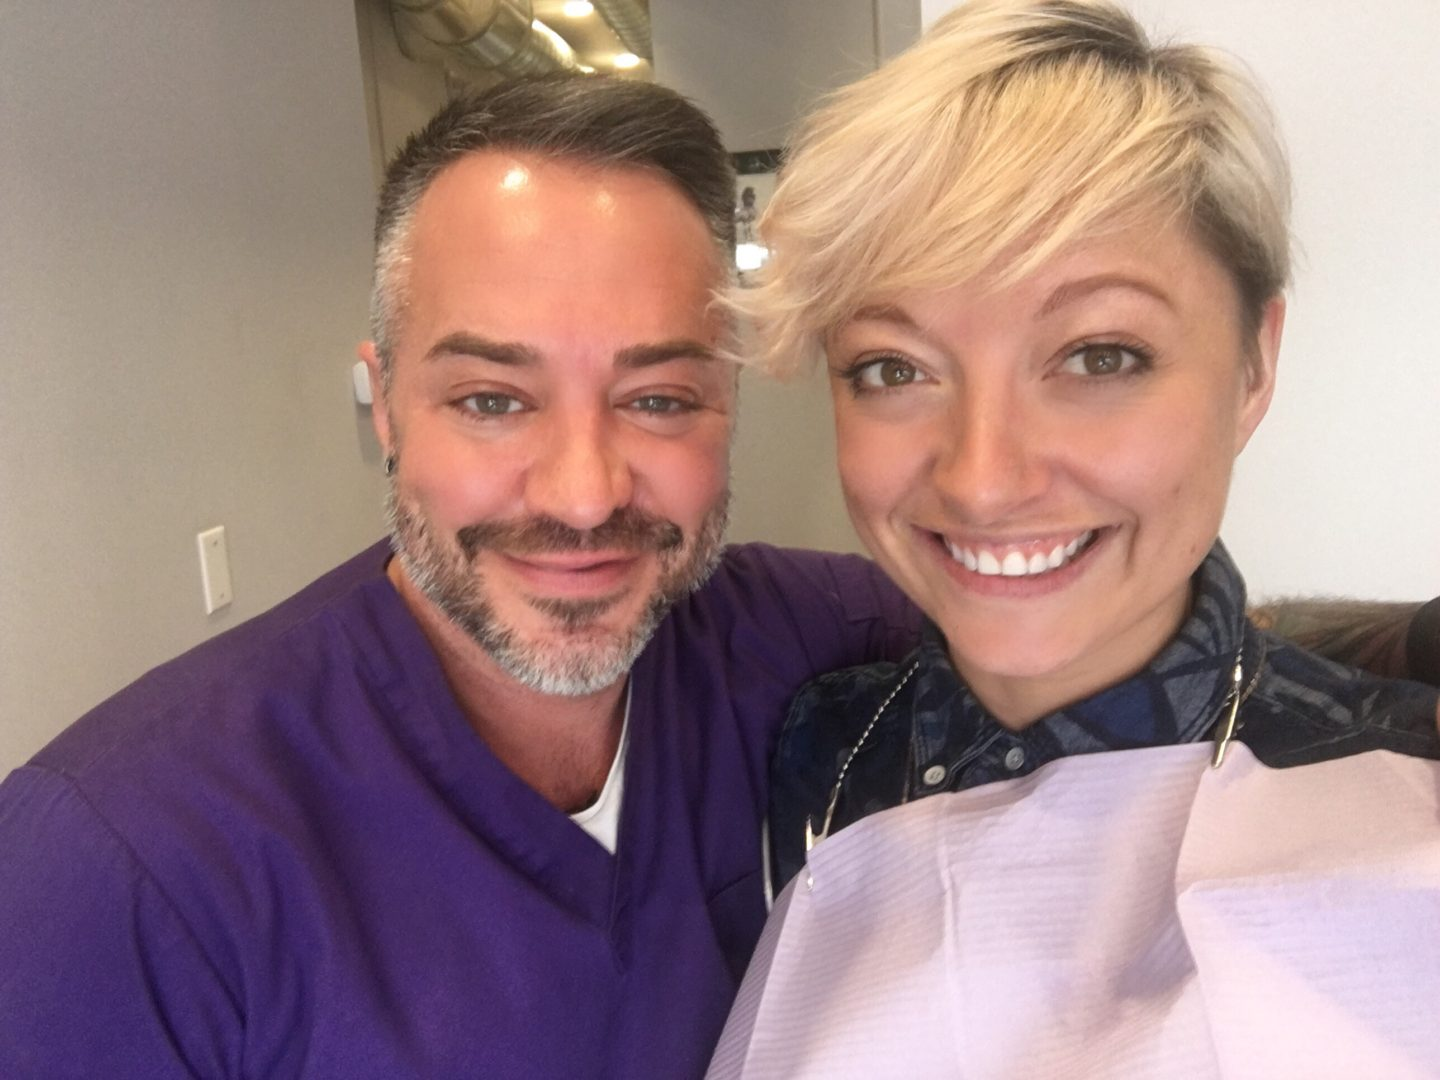 All Smiles – I Finally Went to the Dentist!